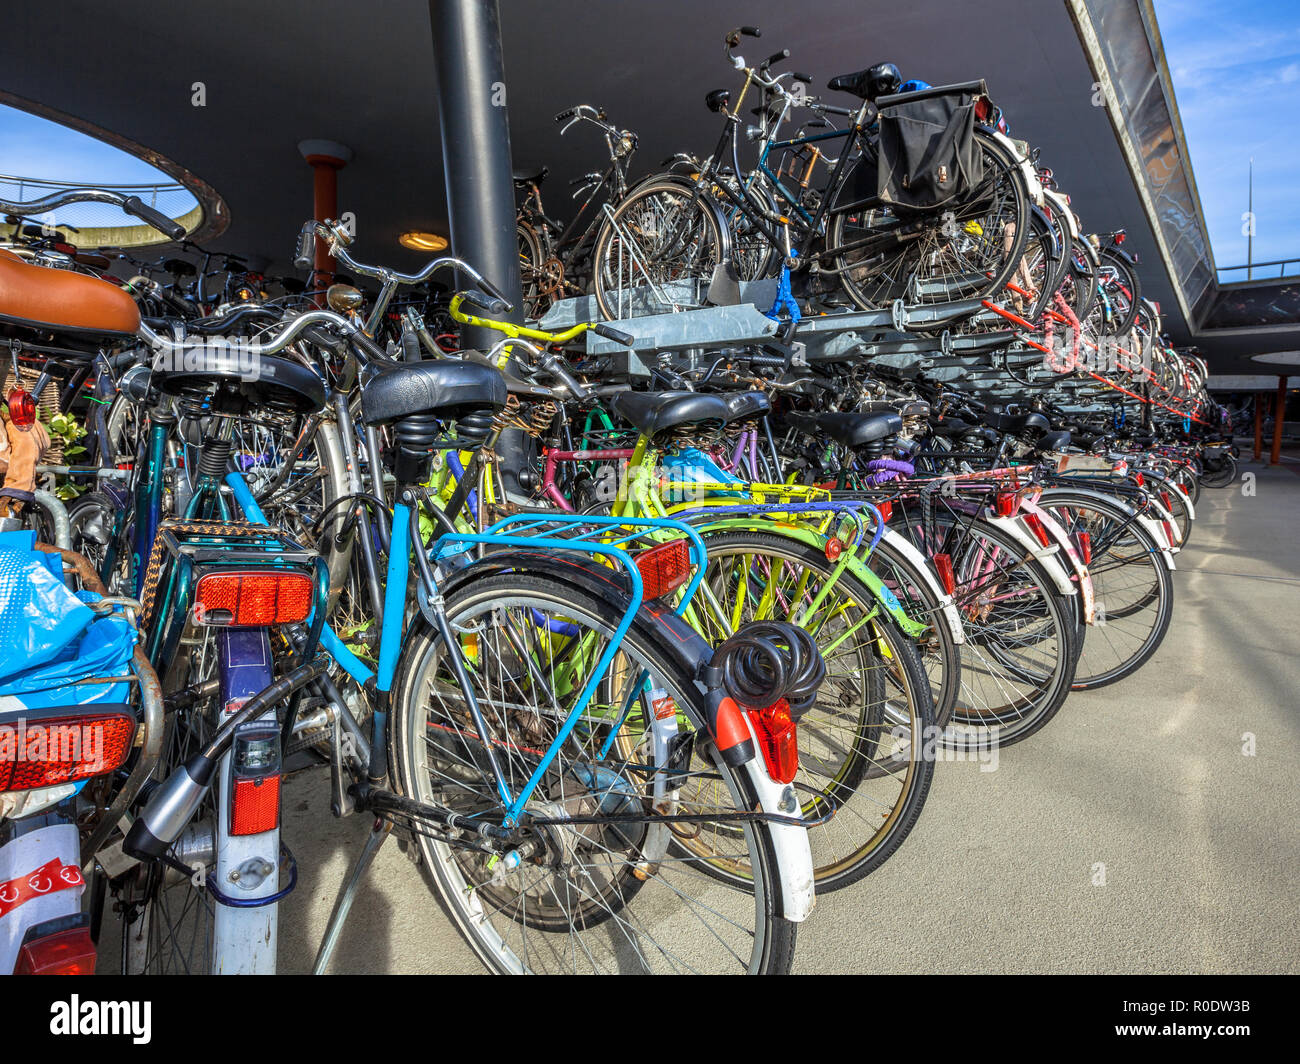 Bicycle parking on Groningen station. The city of Groningen has been elected ' most cycling friendly city of the Netherlands' for 3 years in a row. - Stock Image